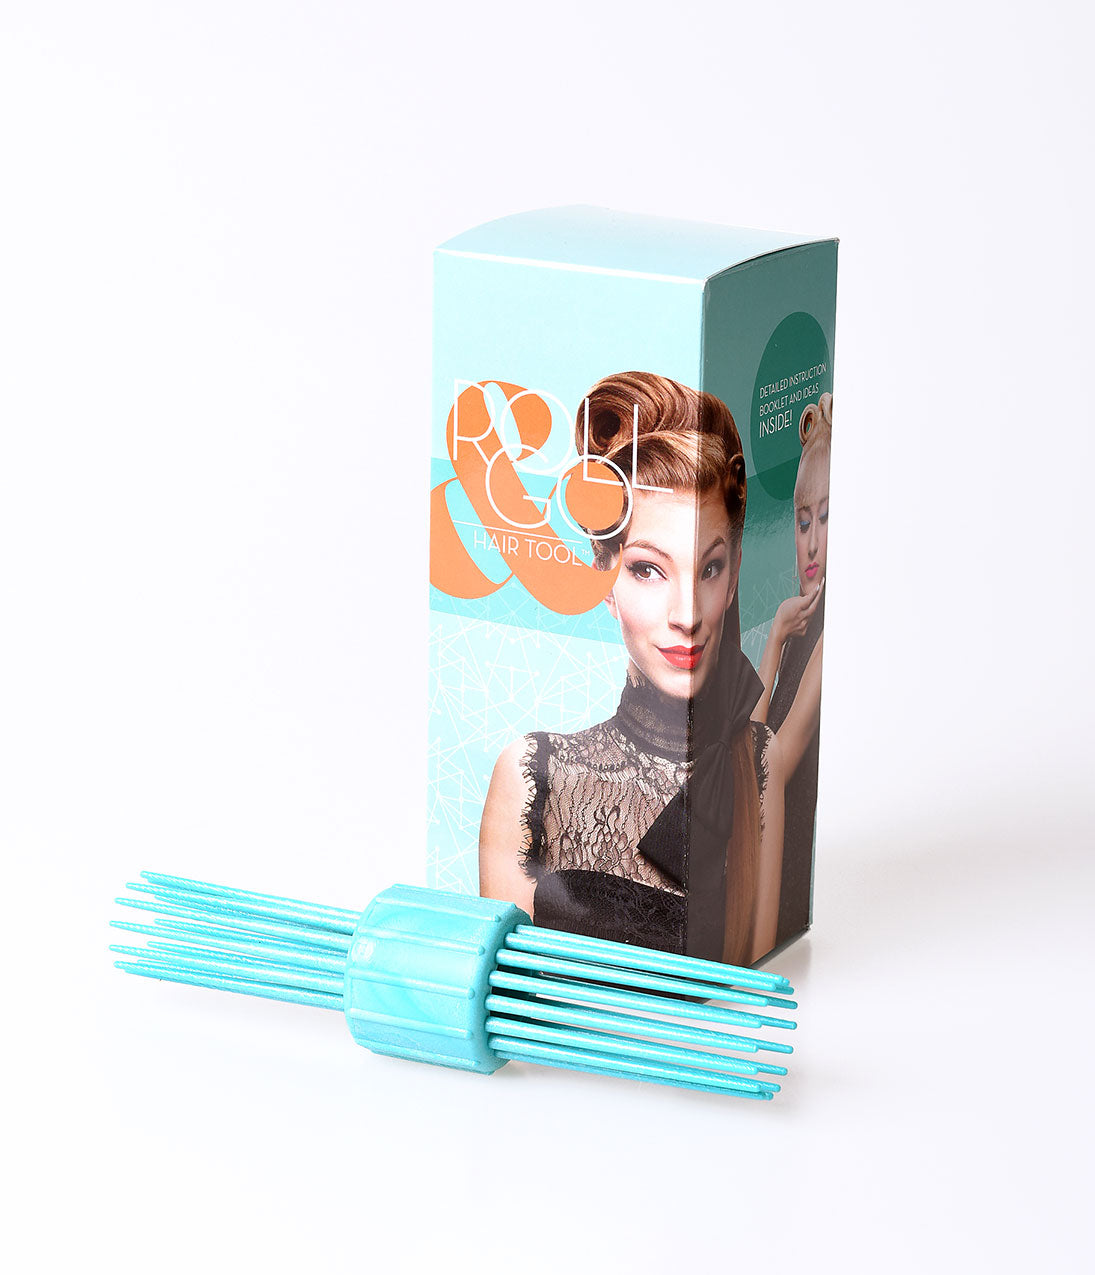 1940s Hairstyles- History of Women's Hairstyles Vintage Style Mint Roll  Go Hair Tool $32.00 AT vintagedancer.com